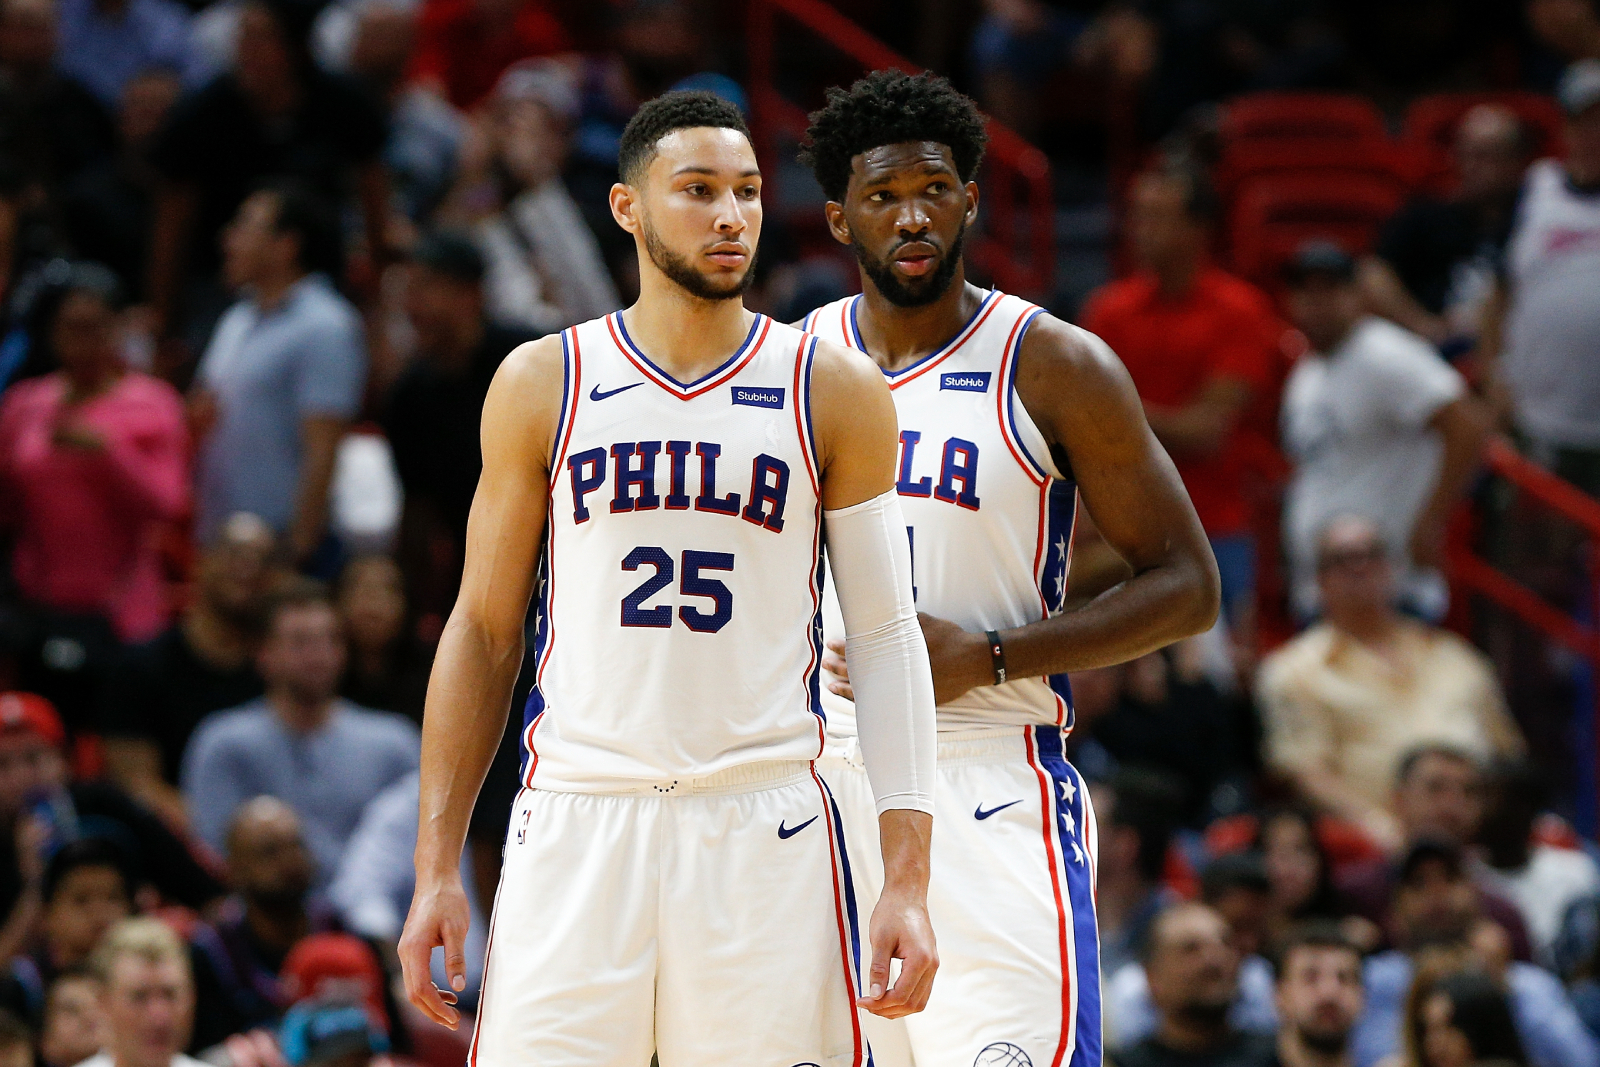 Joel Embiid and Ben Simmons could have a big season with the Philadelphia 76ers. Daryl Morey just made a big proclamation about them, too.